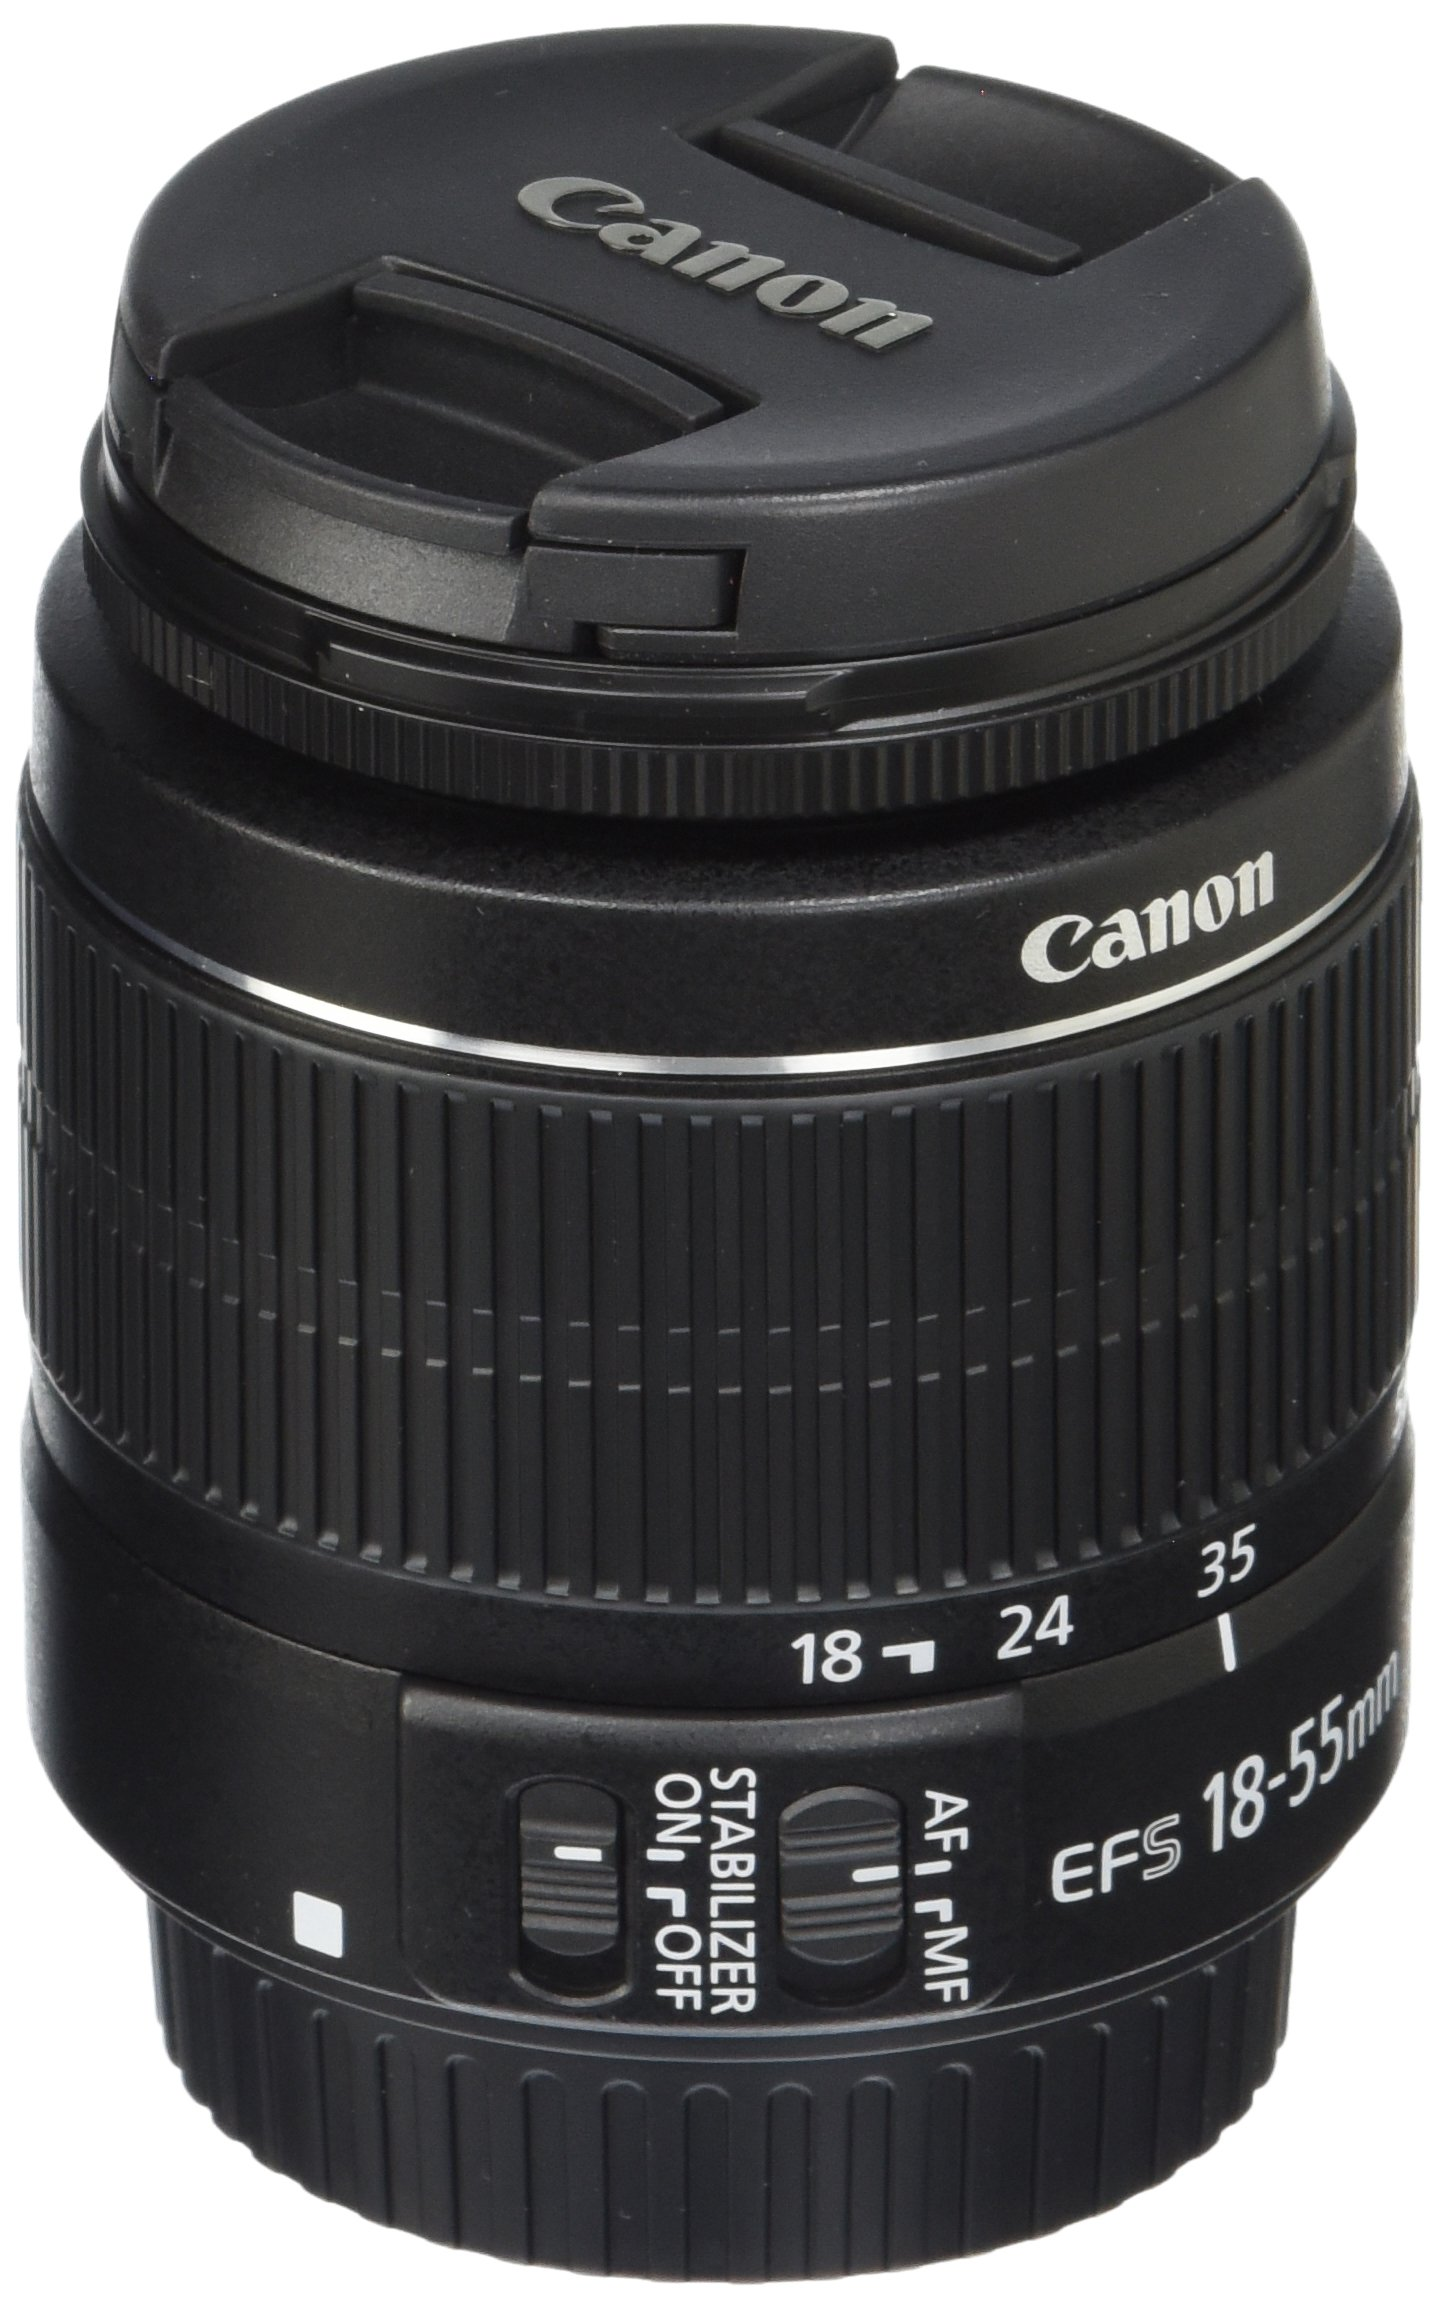 Canon EF-S 18-55mm f/3.5-5.6 IS II SLR Lens by Canon